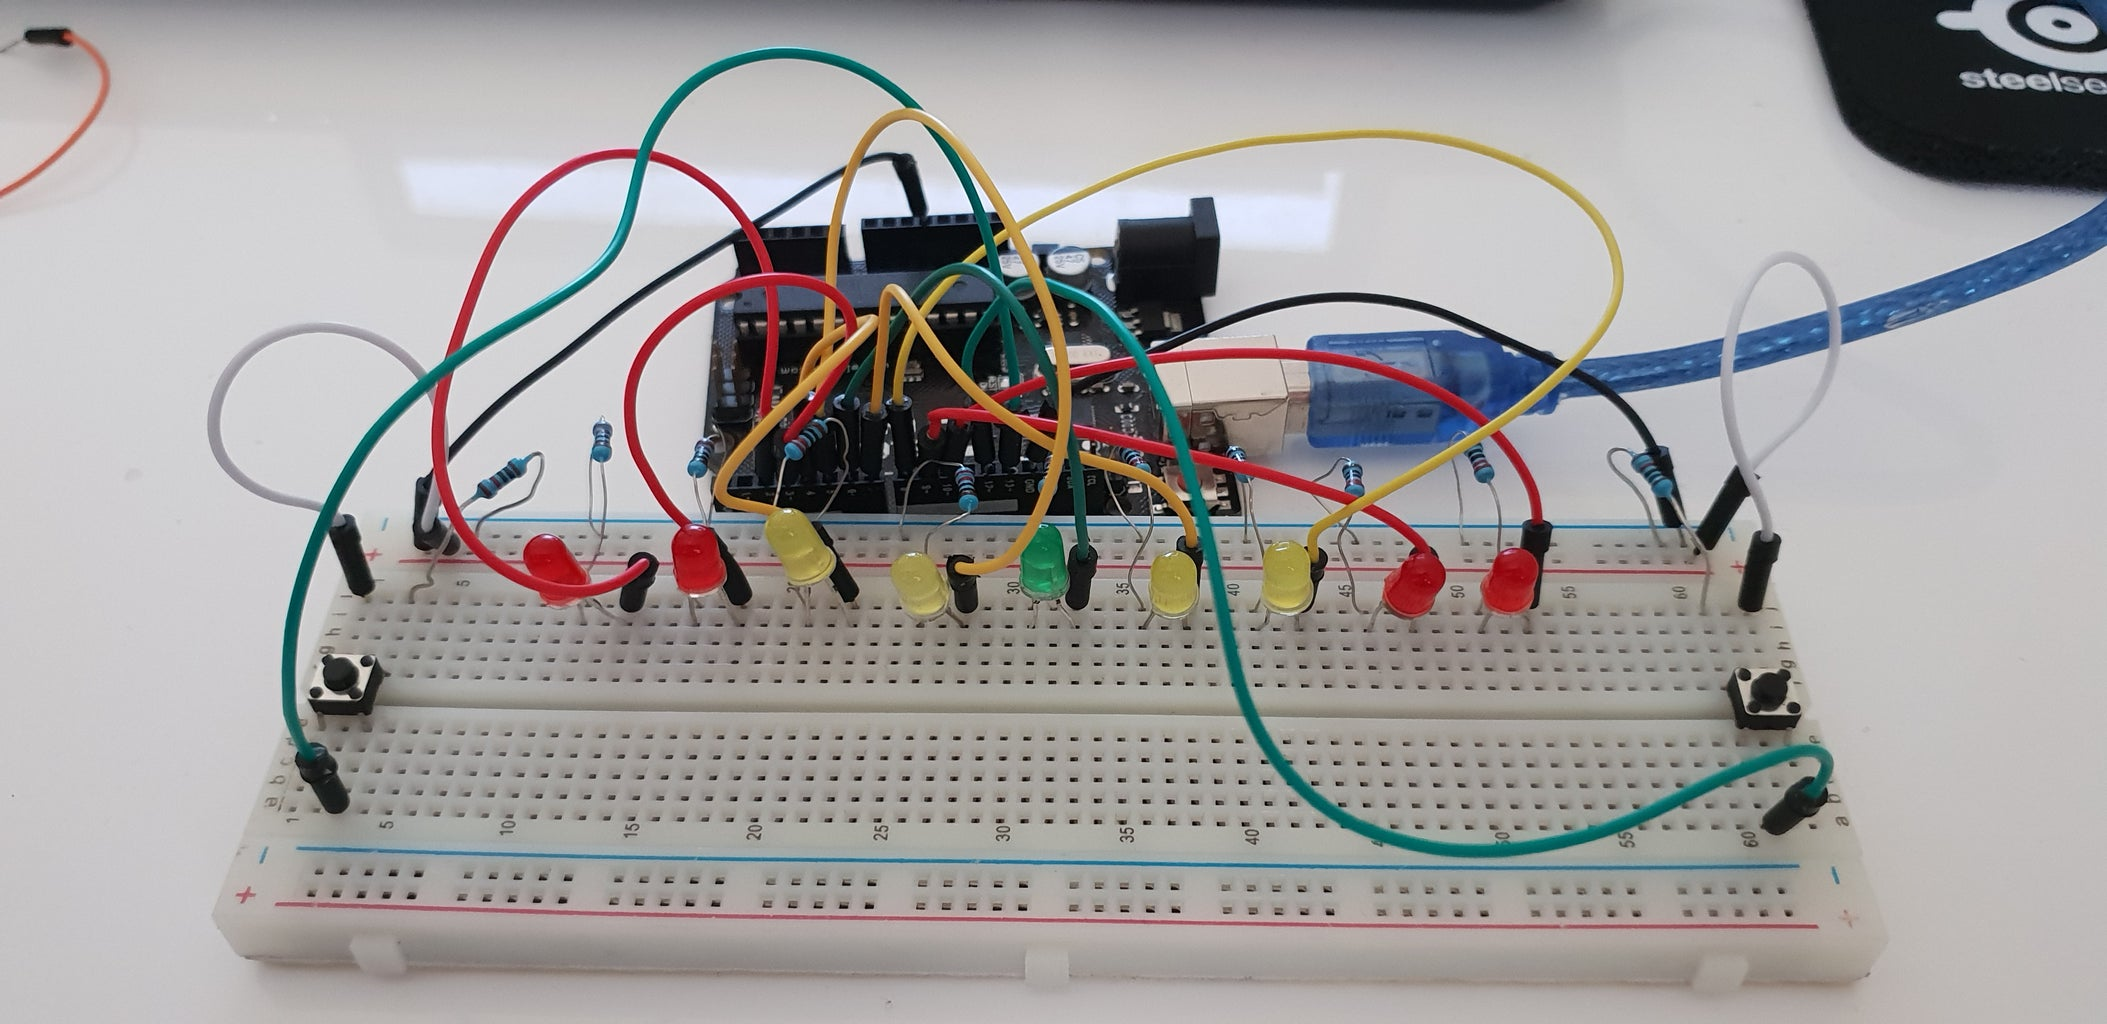 This Is What Your Final Circuit Should Look Like After Completing All the Steps Correctly